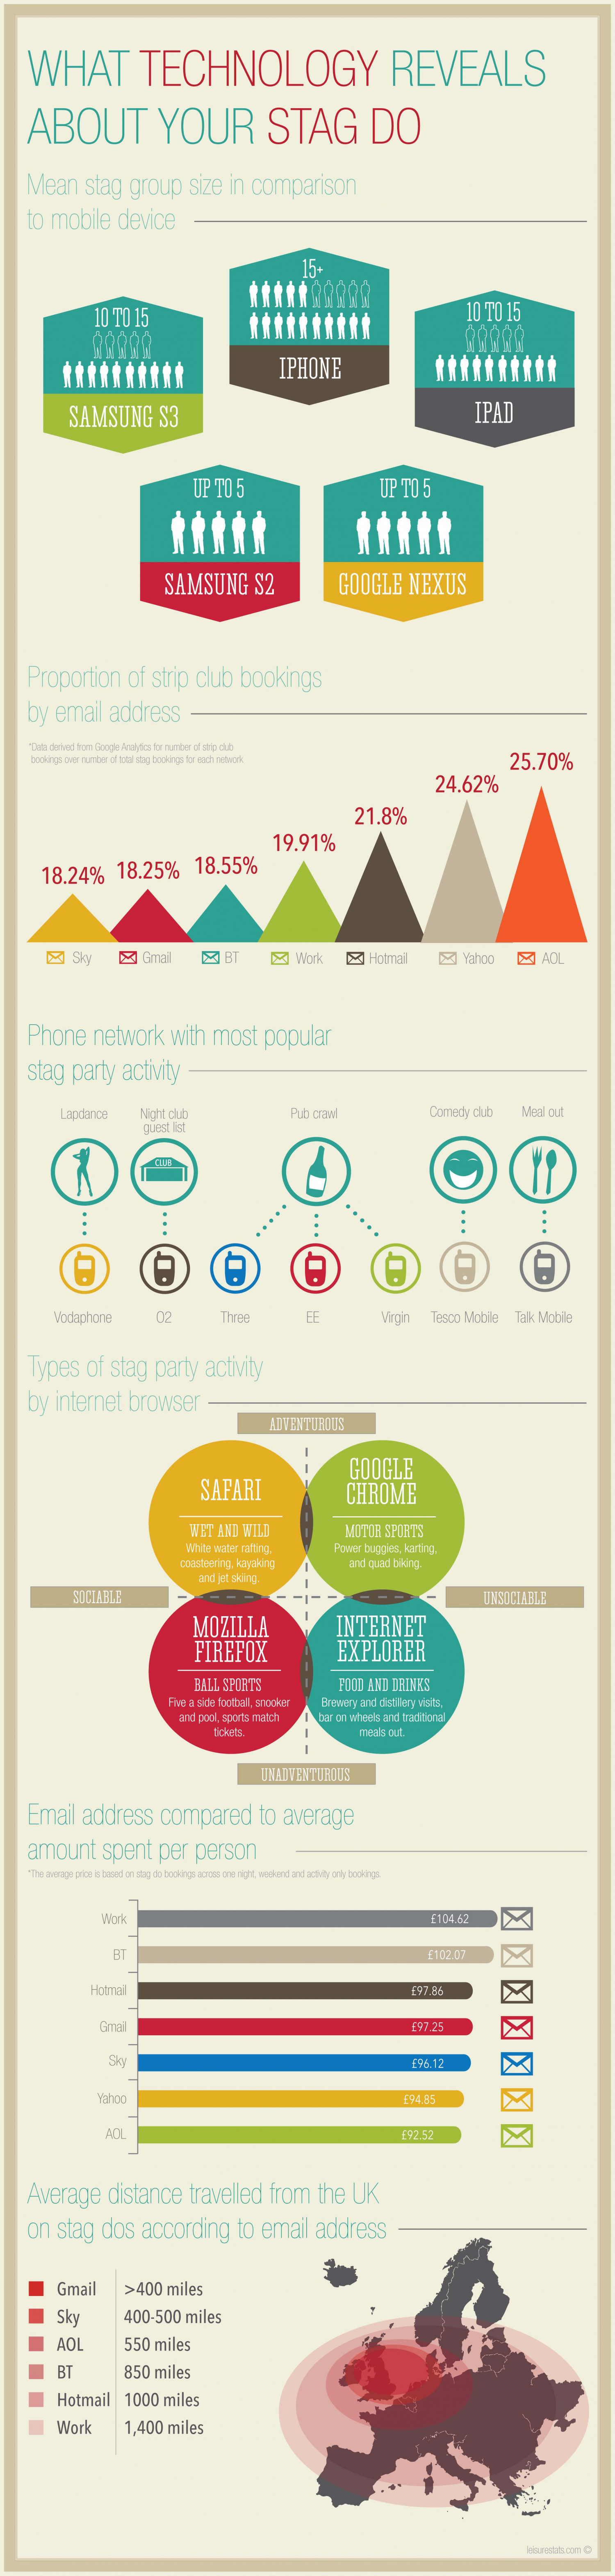 What Technology Reveal About Your Stag Do Infographic